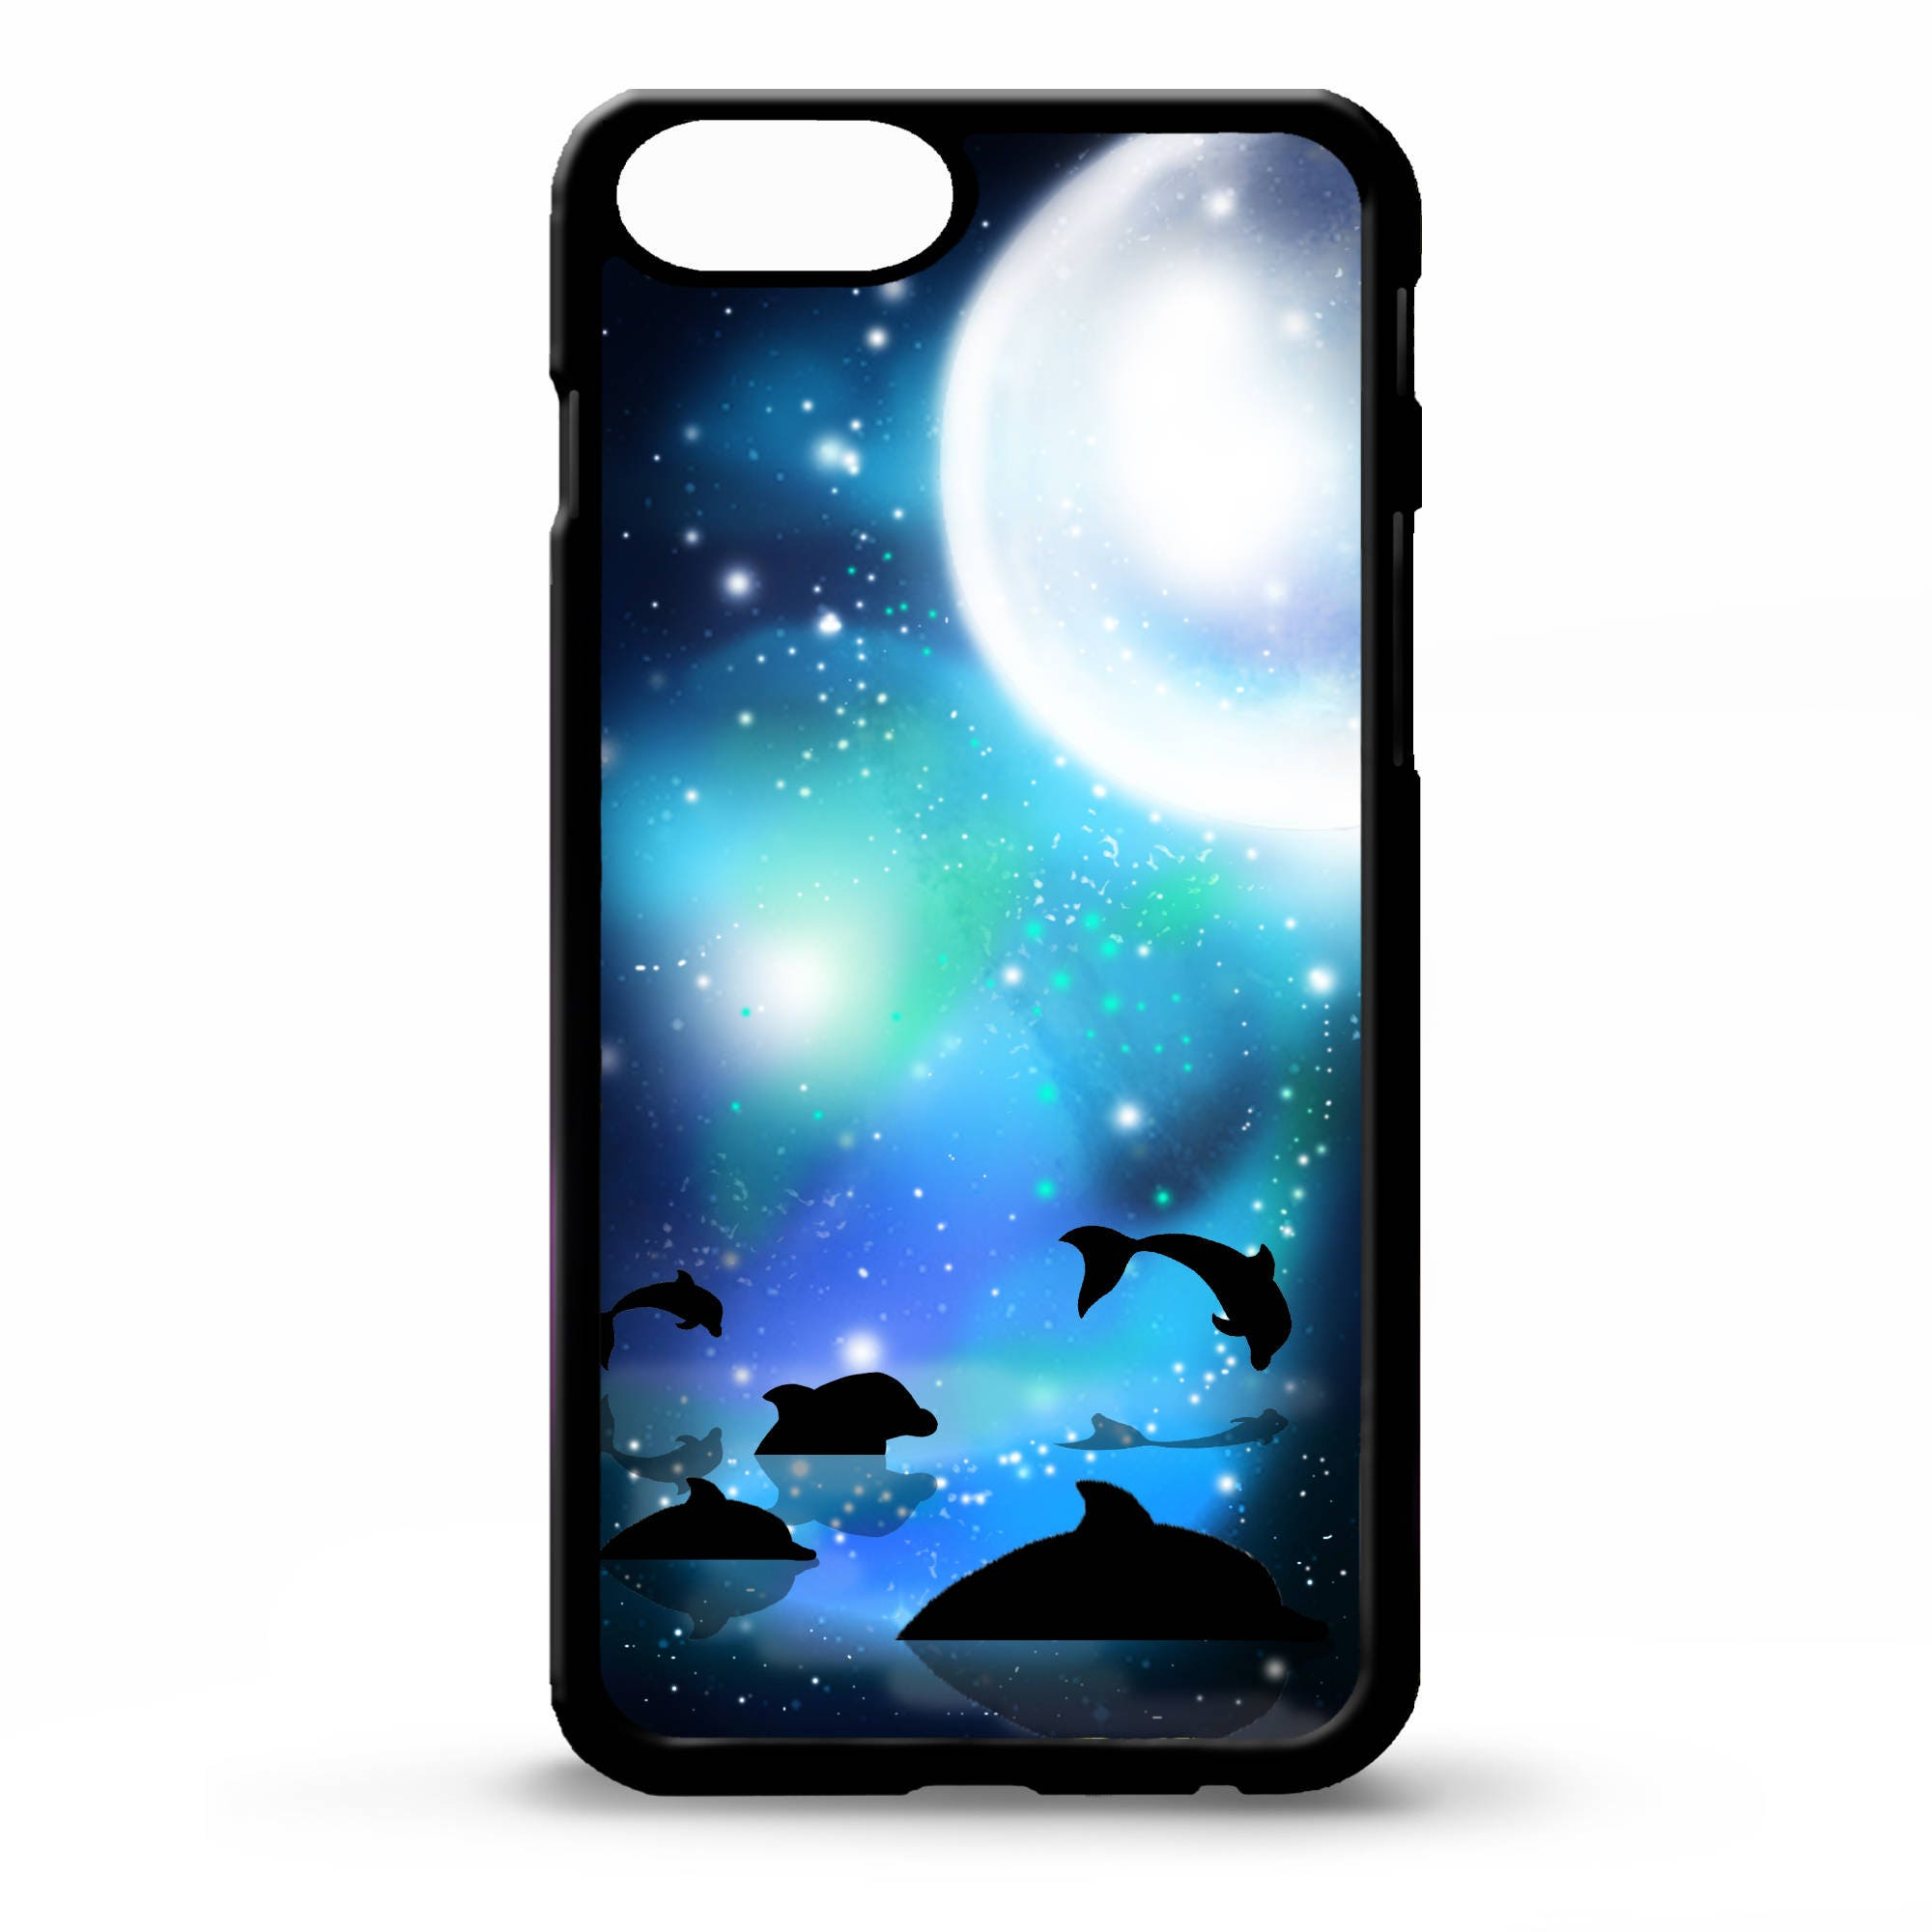 Bags Purses Custom Hardcase Midnight Dots Iphone 4 5 5c 6 Plus 7 Case Dolphins Swimming In Moonlight Full Moon Pretty Dolphin Silhouette Art Cover For Samsung Galaxy S5 S6